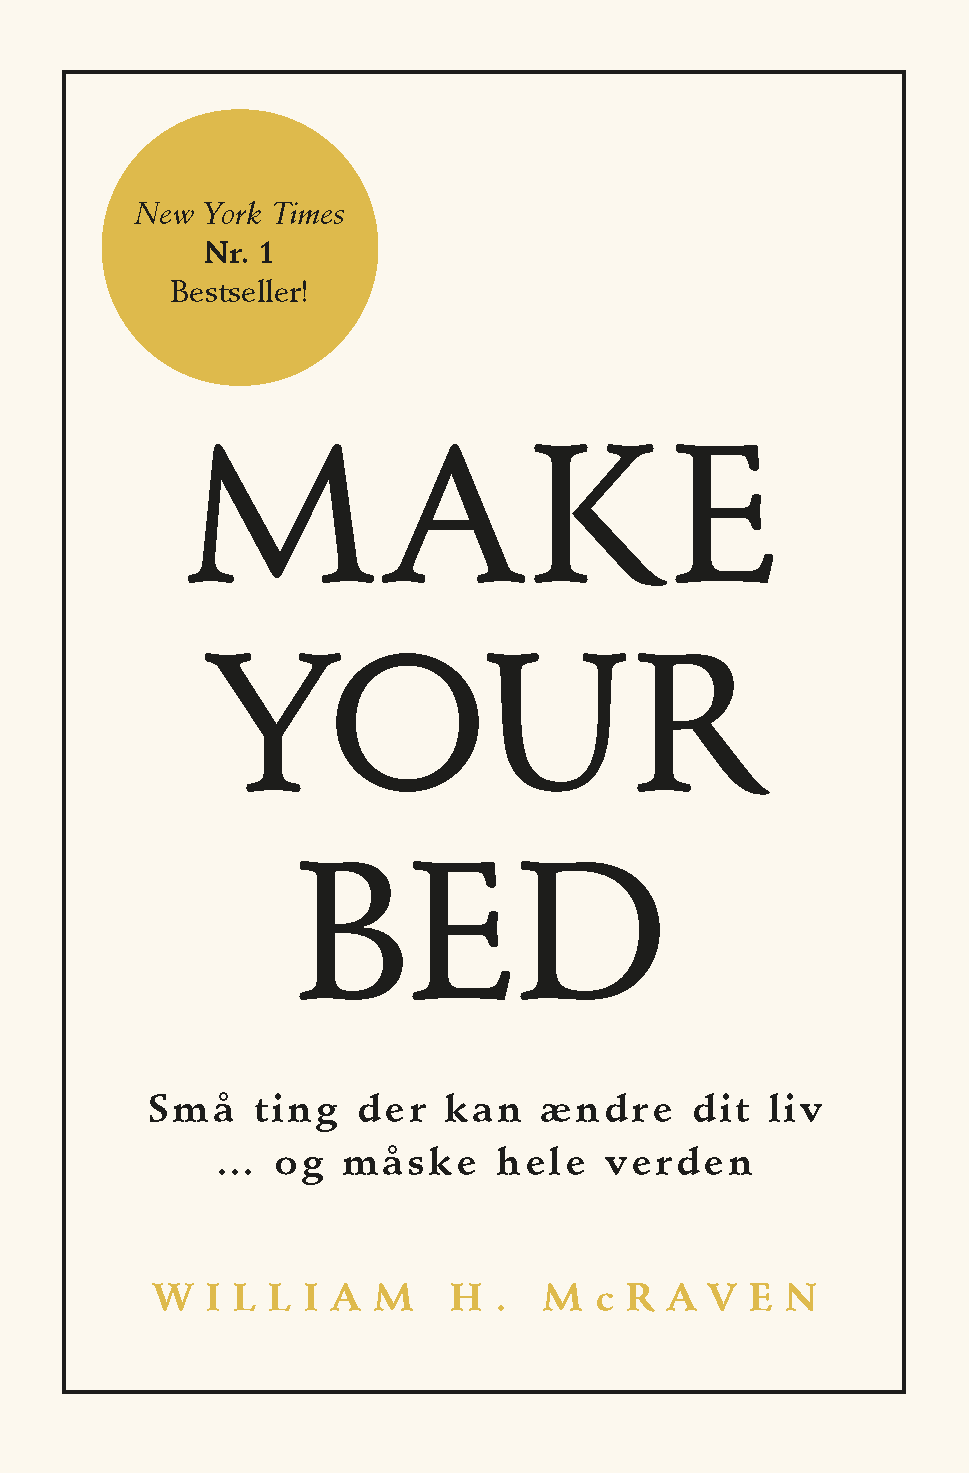 Make Your Bed Look Inside (Pdf format)